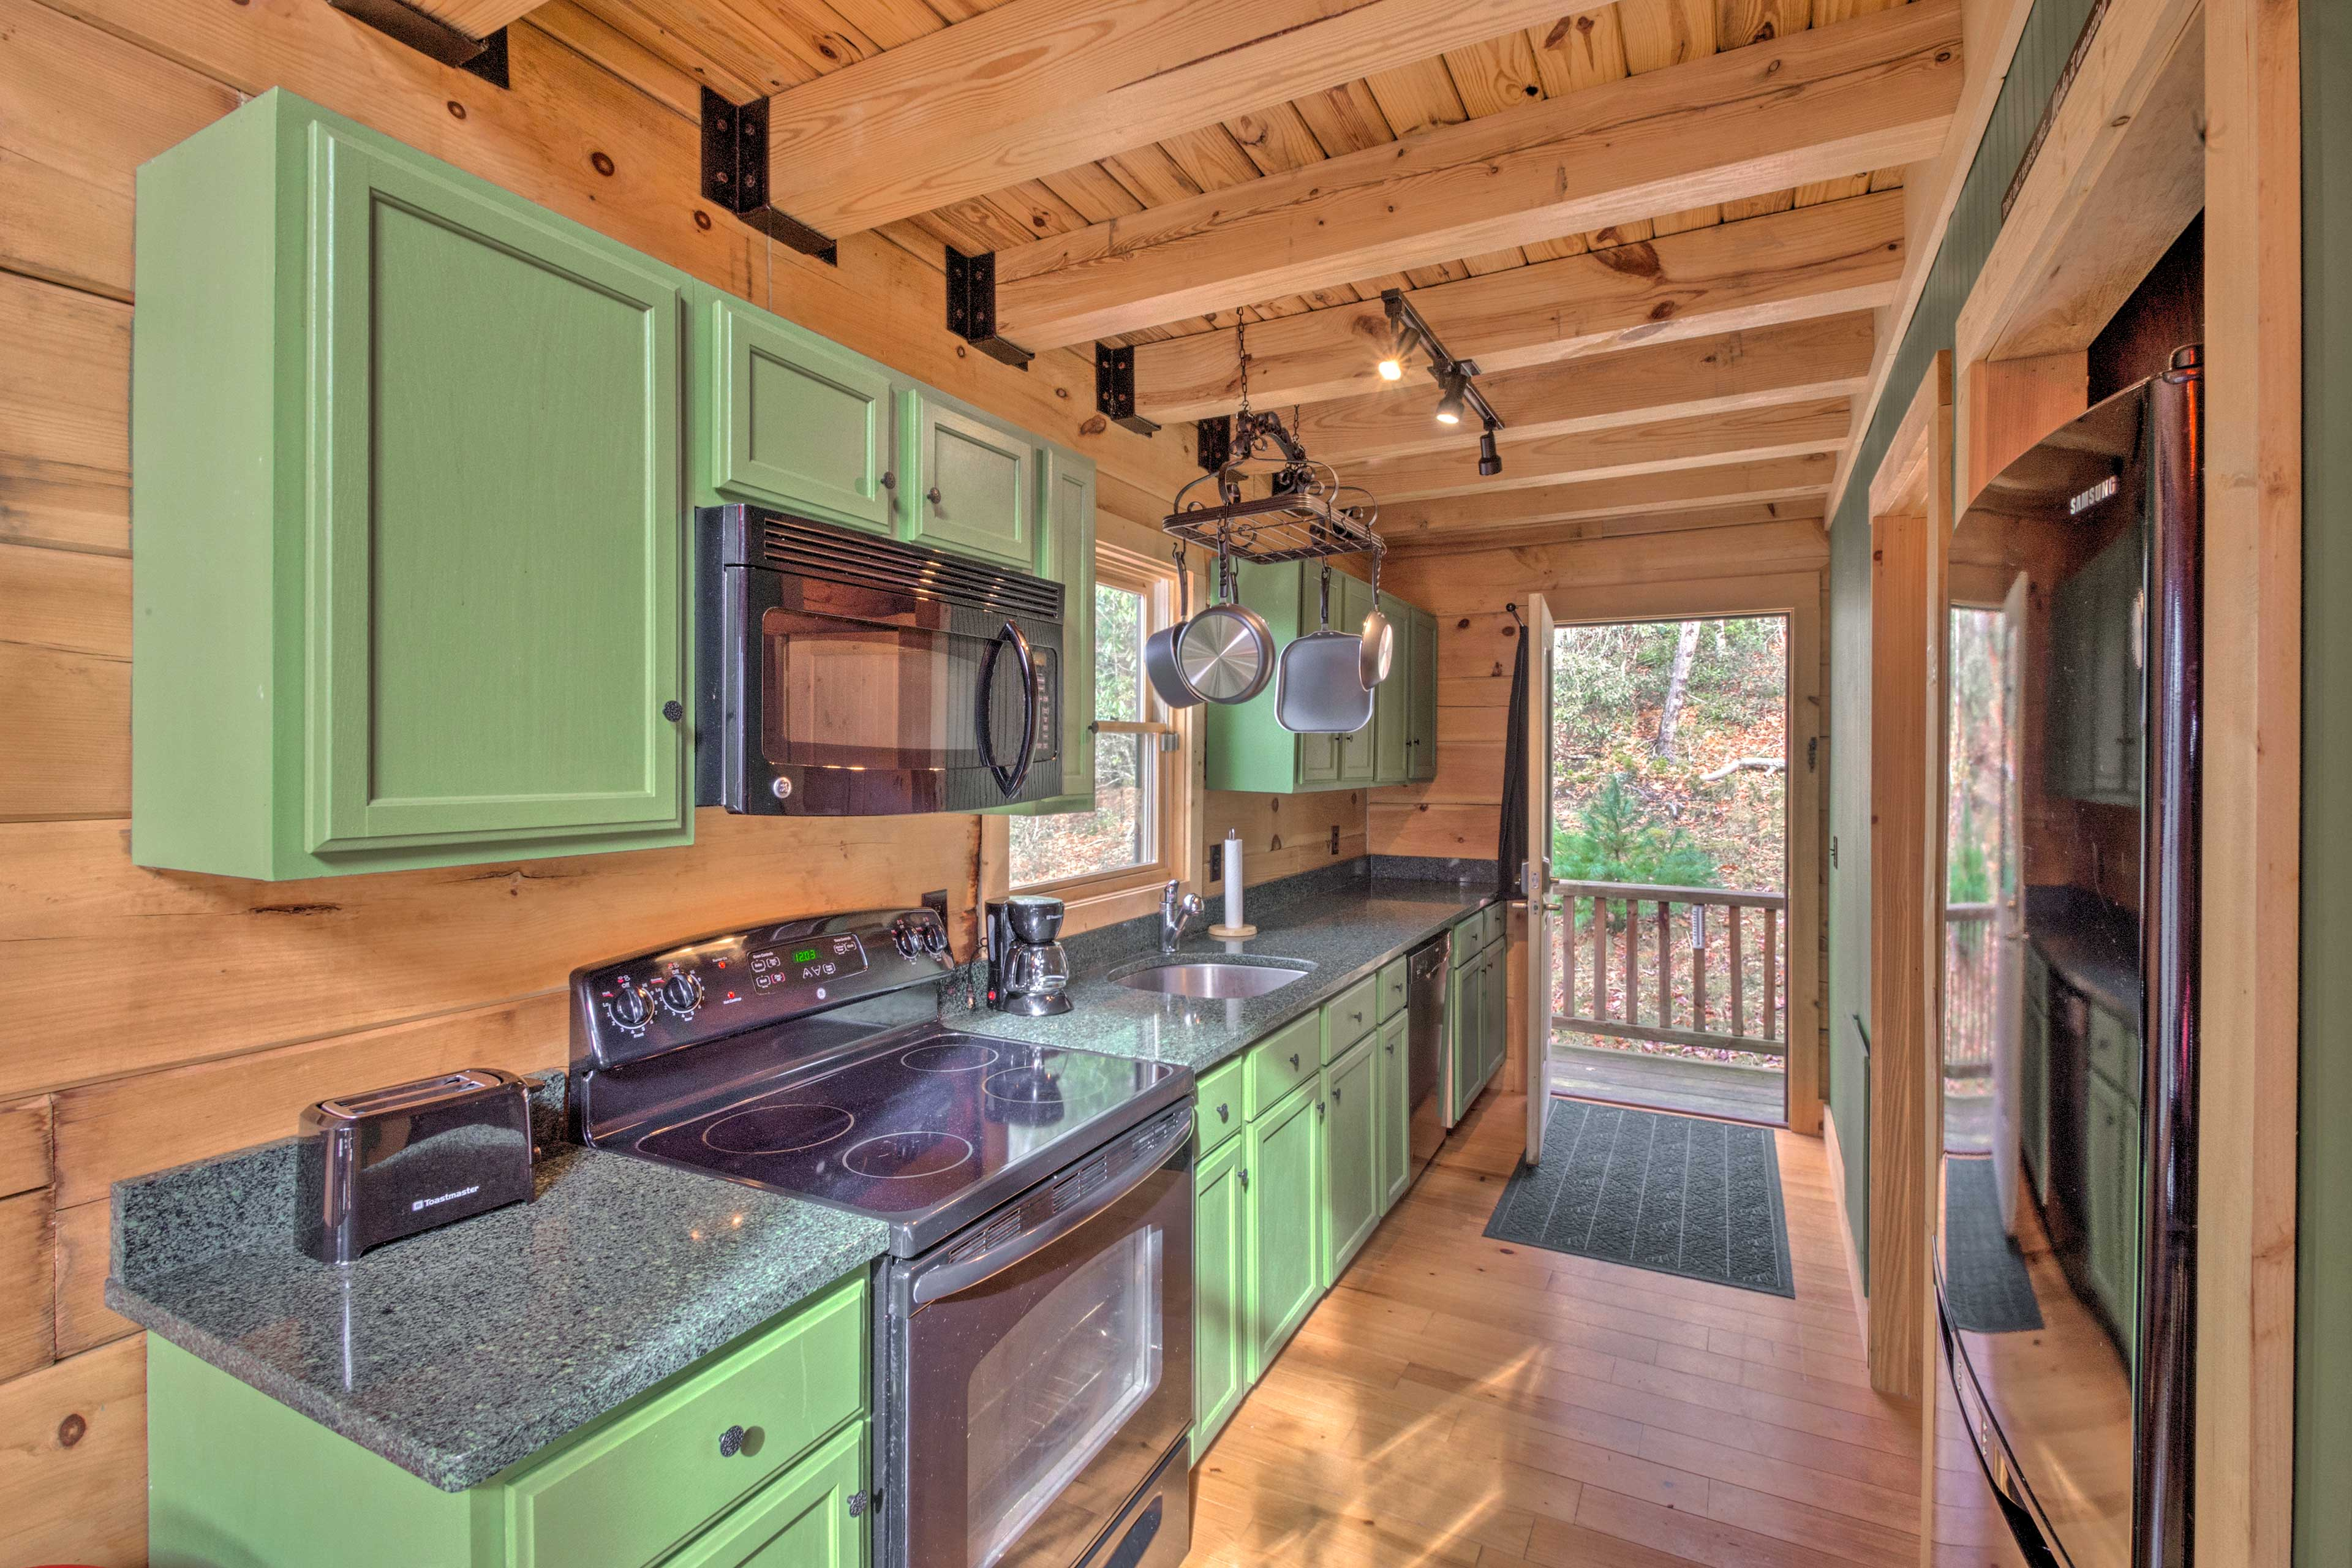 The fully equipped kitchen boasts everything you could need.